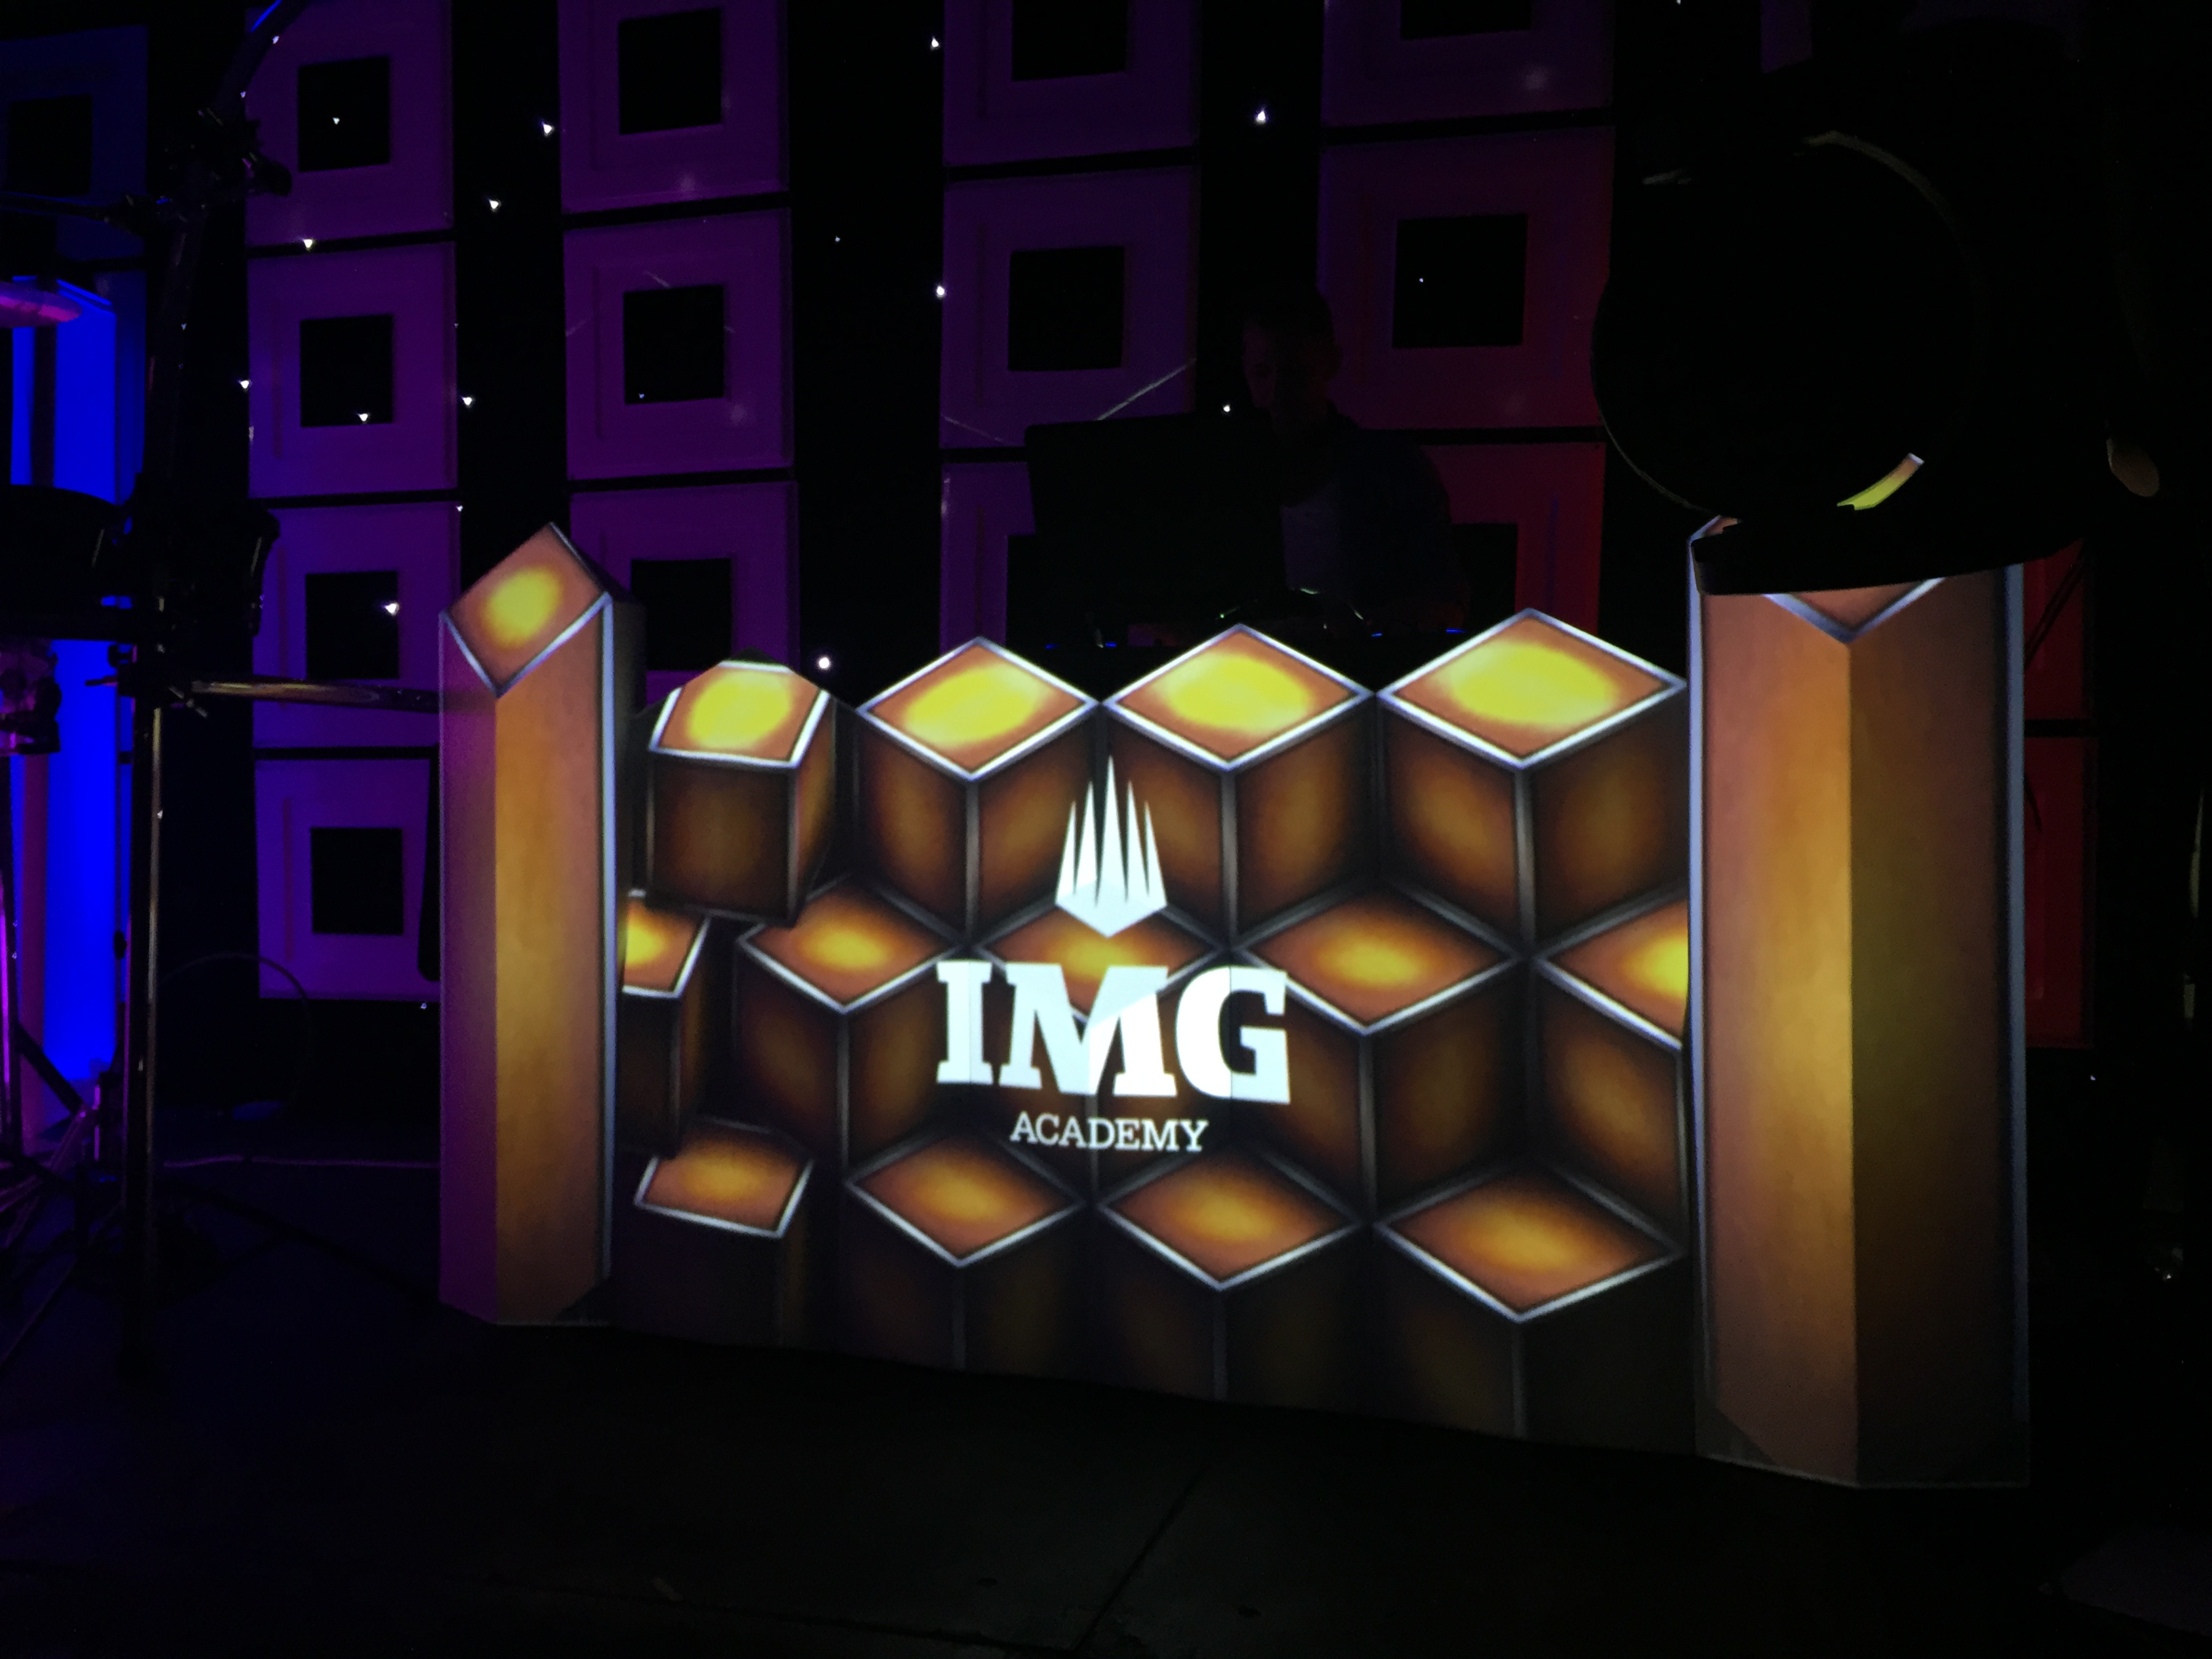 3D DJ Booth At IMG Academy